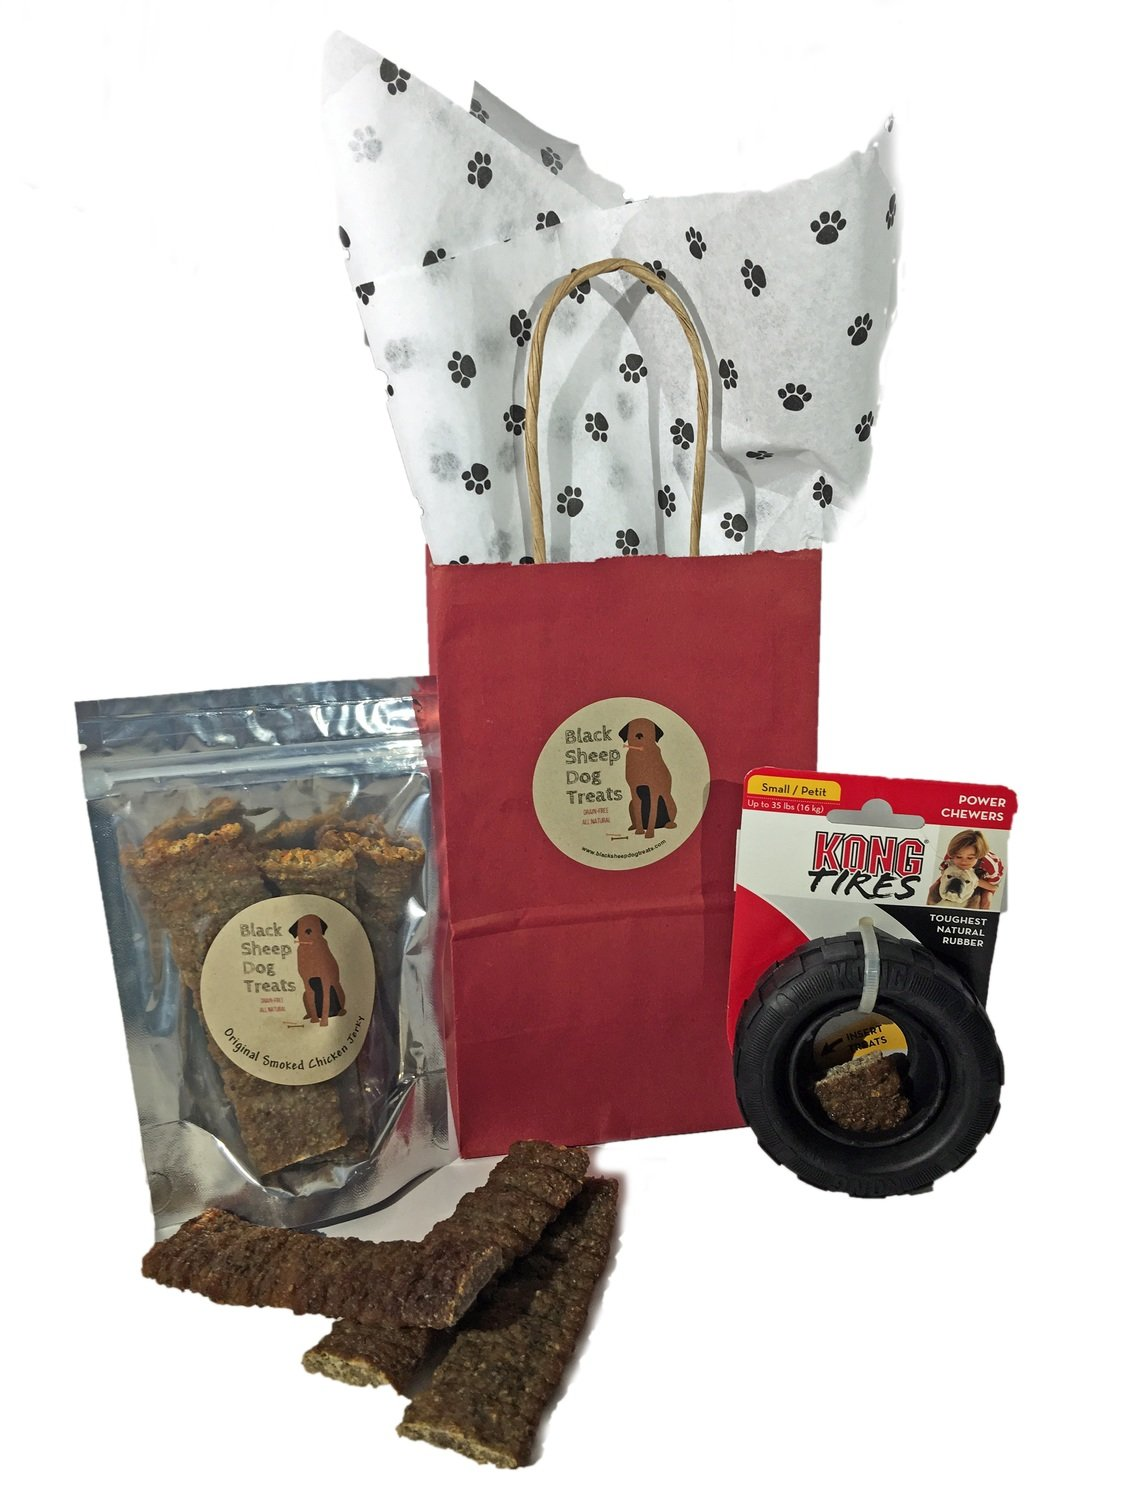 Jerky and KONG TRAXX Toy Gift Set